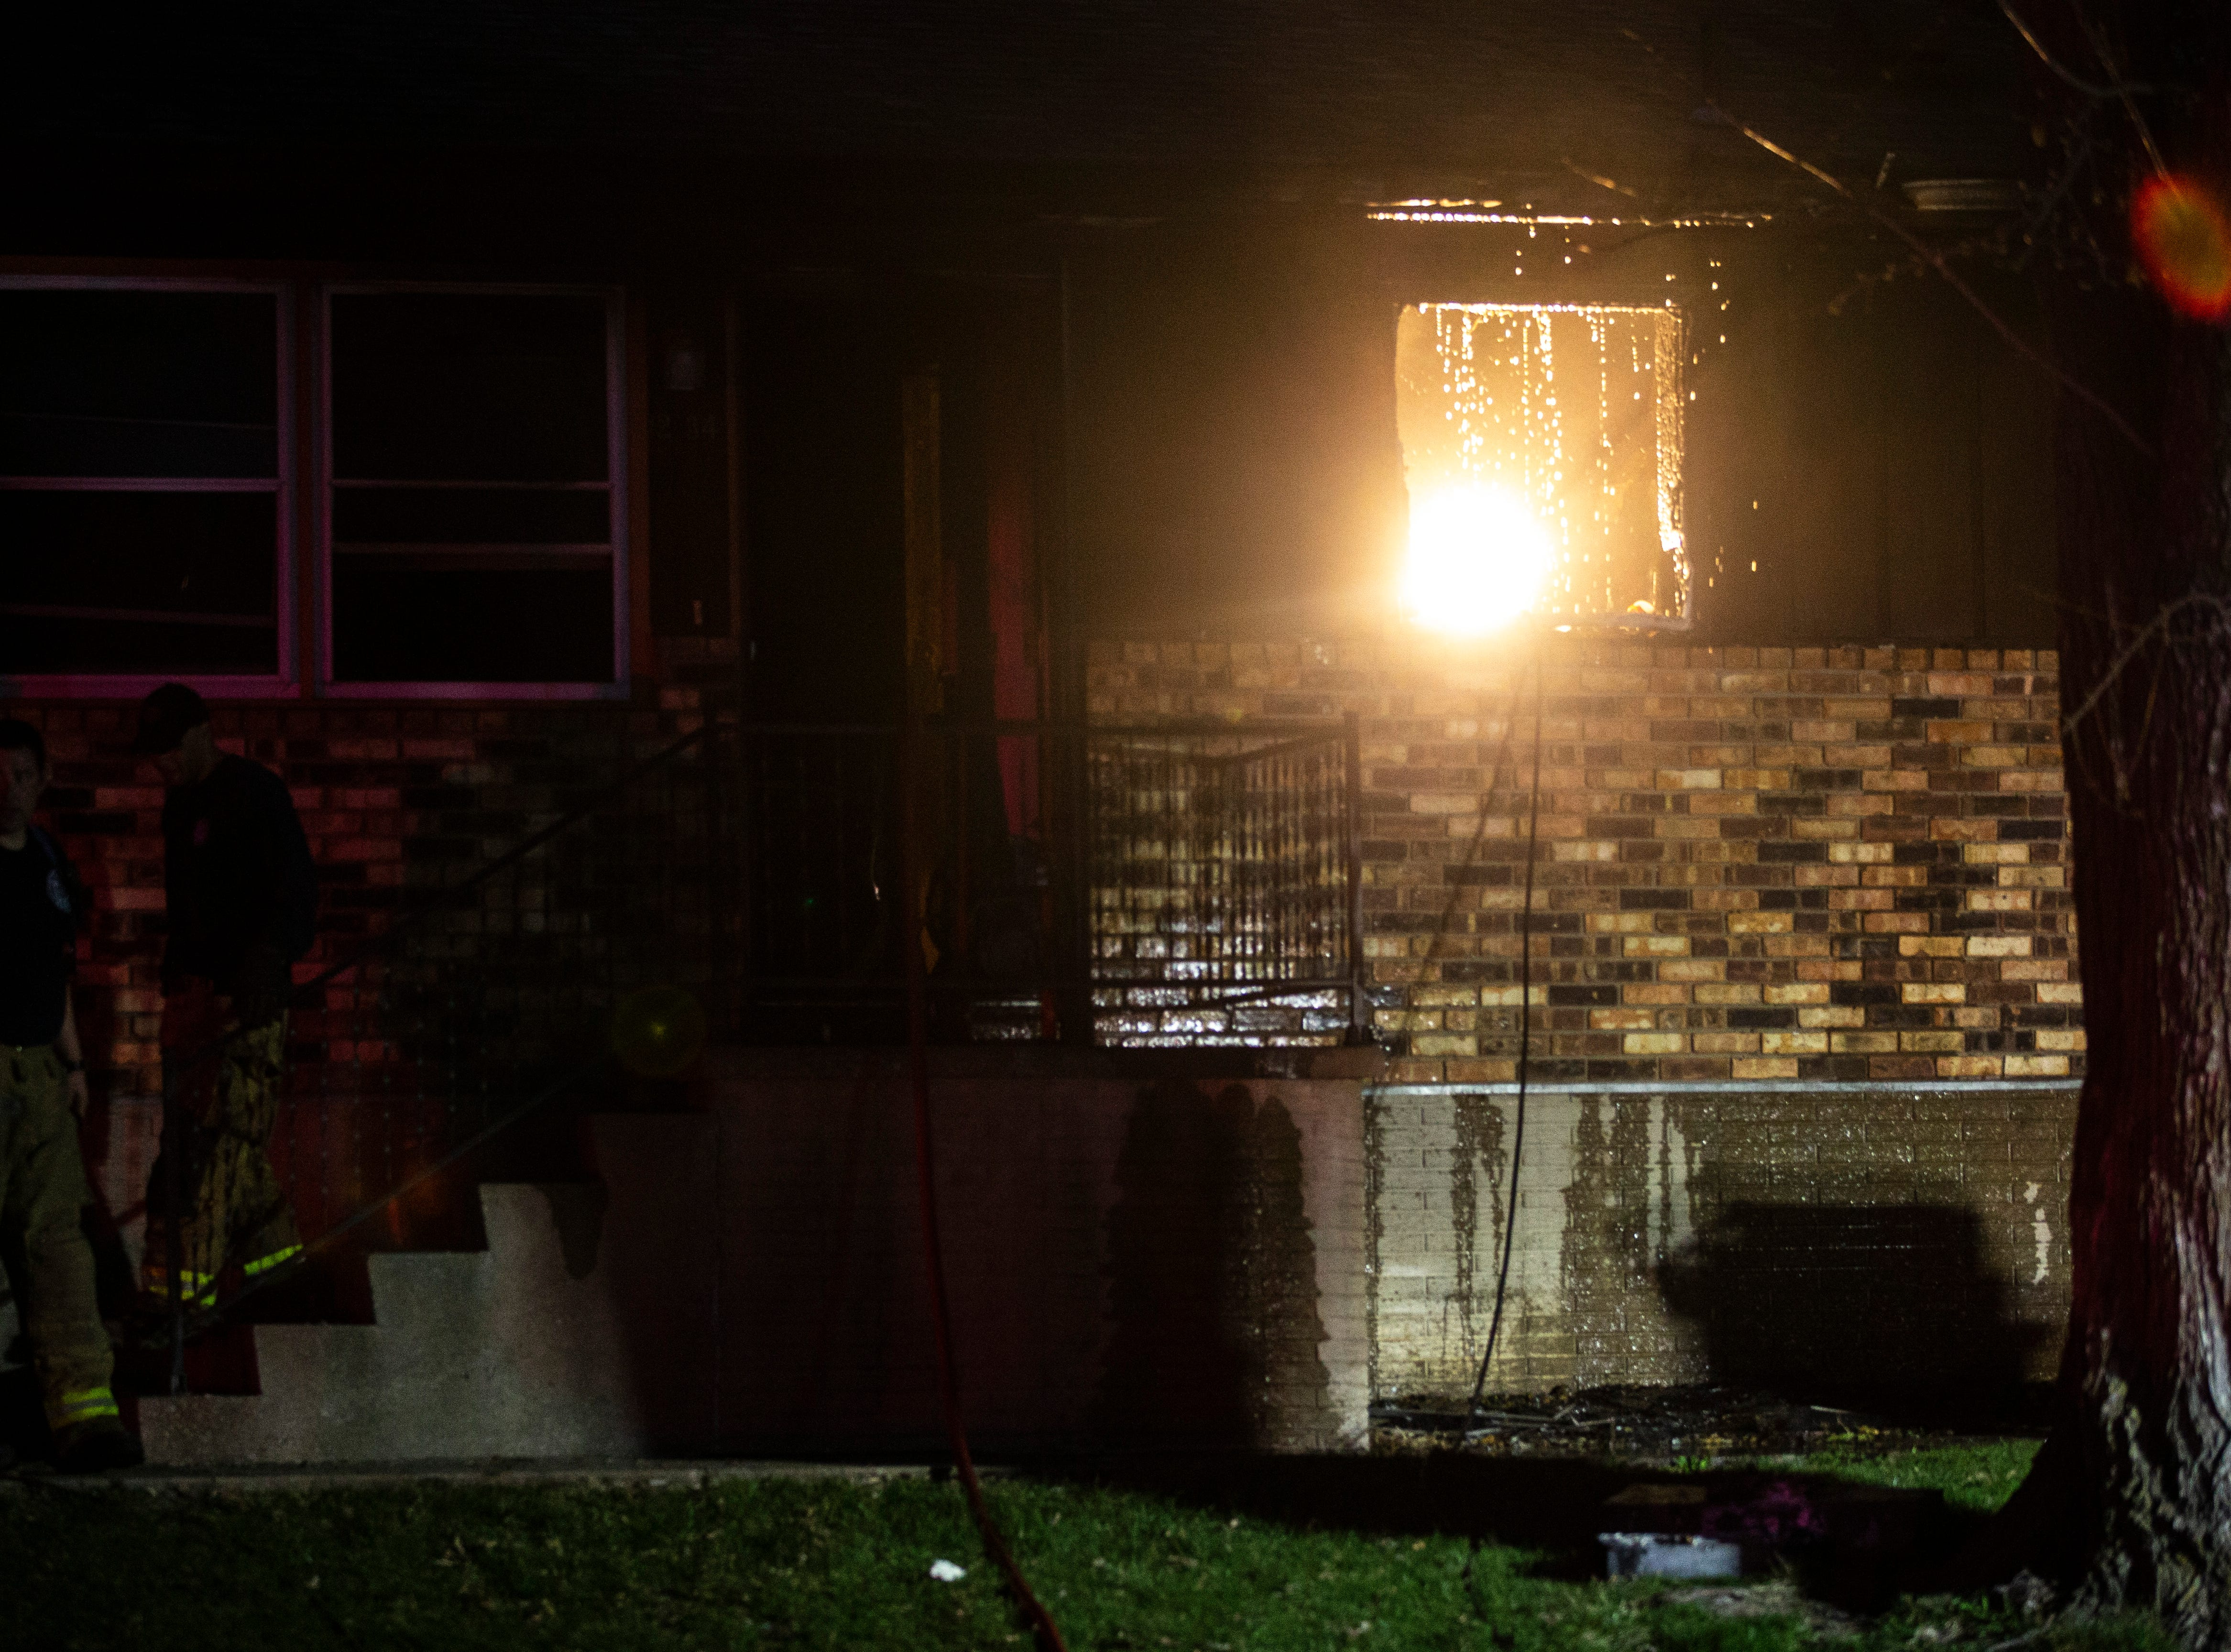 Firefighters respond to a structure fire at the east side of a duplex on Tuesday, April 16, 2019, in the 1200 block of Sandusky Drive in Iowa City, Iowa.